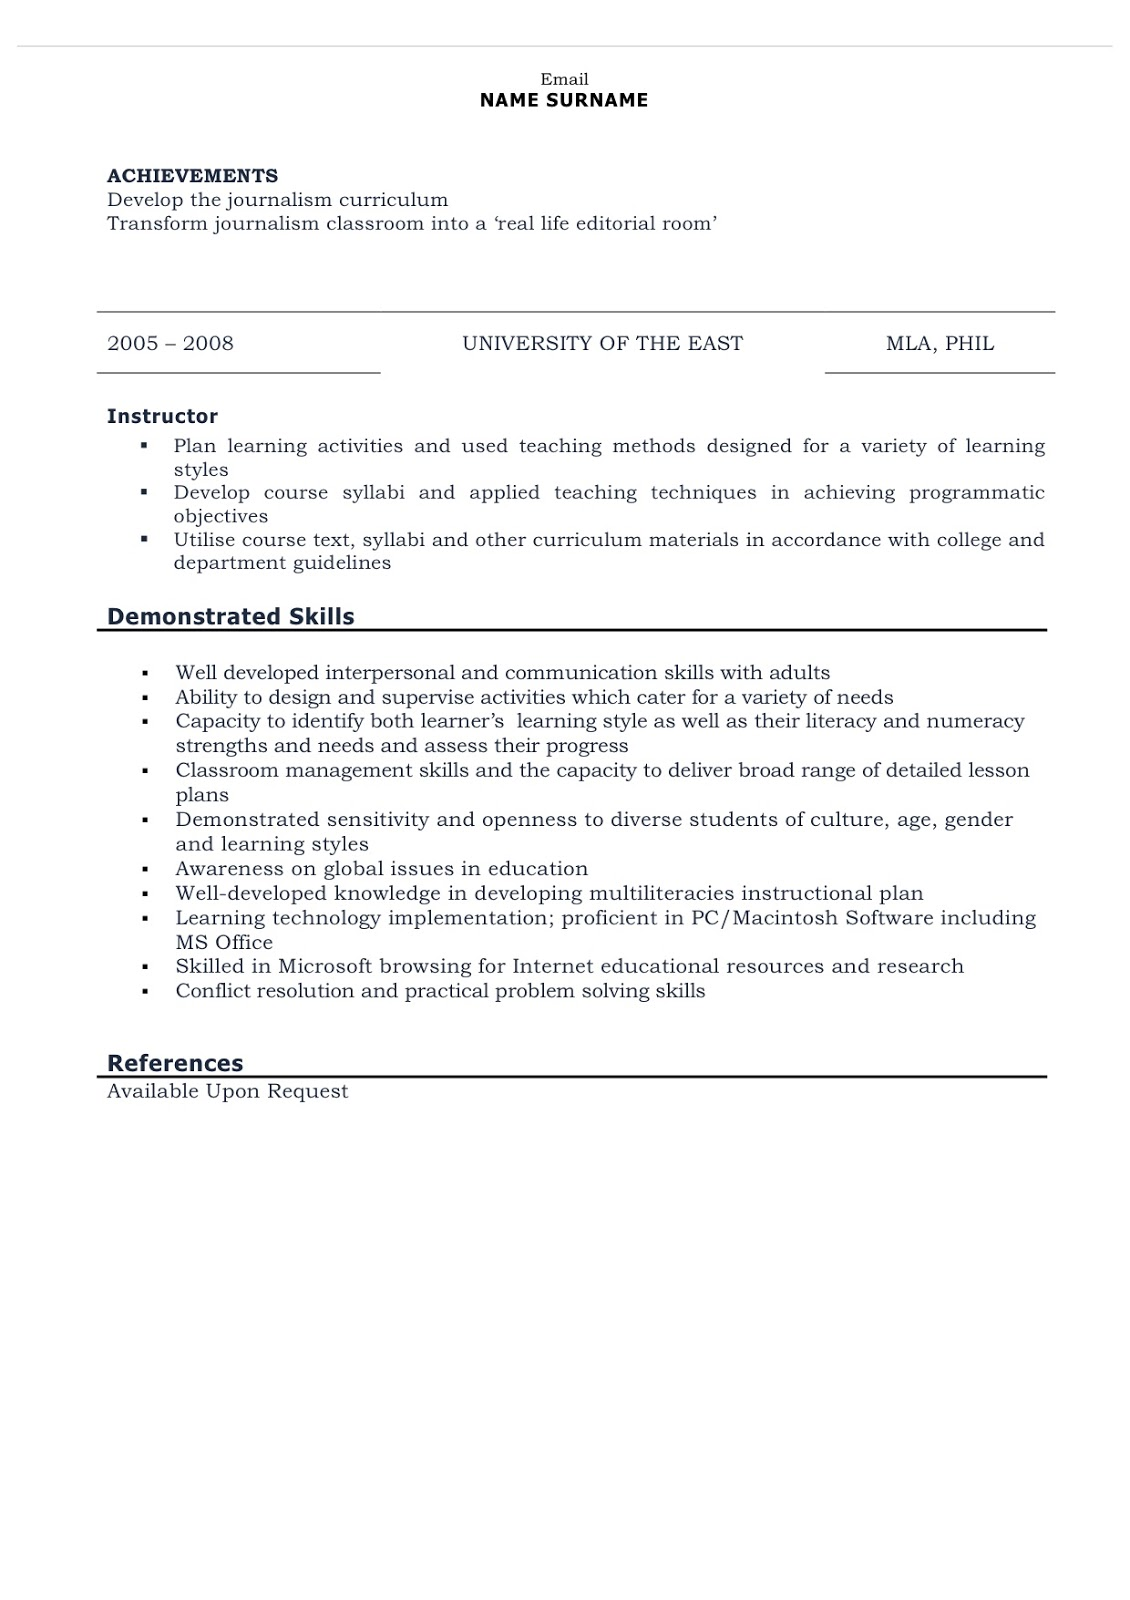 combination resume template html combination resume template job seek 101 how to write a resume combination resume